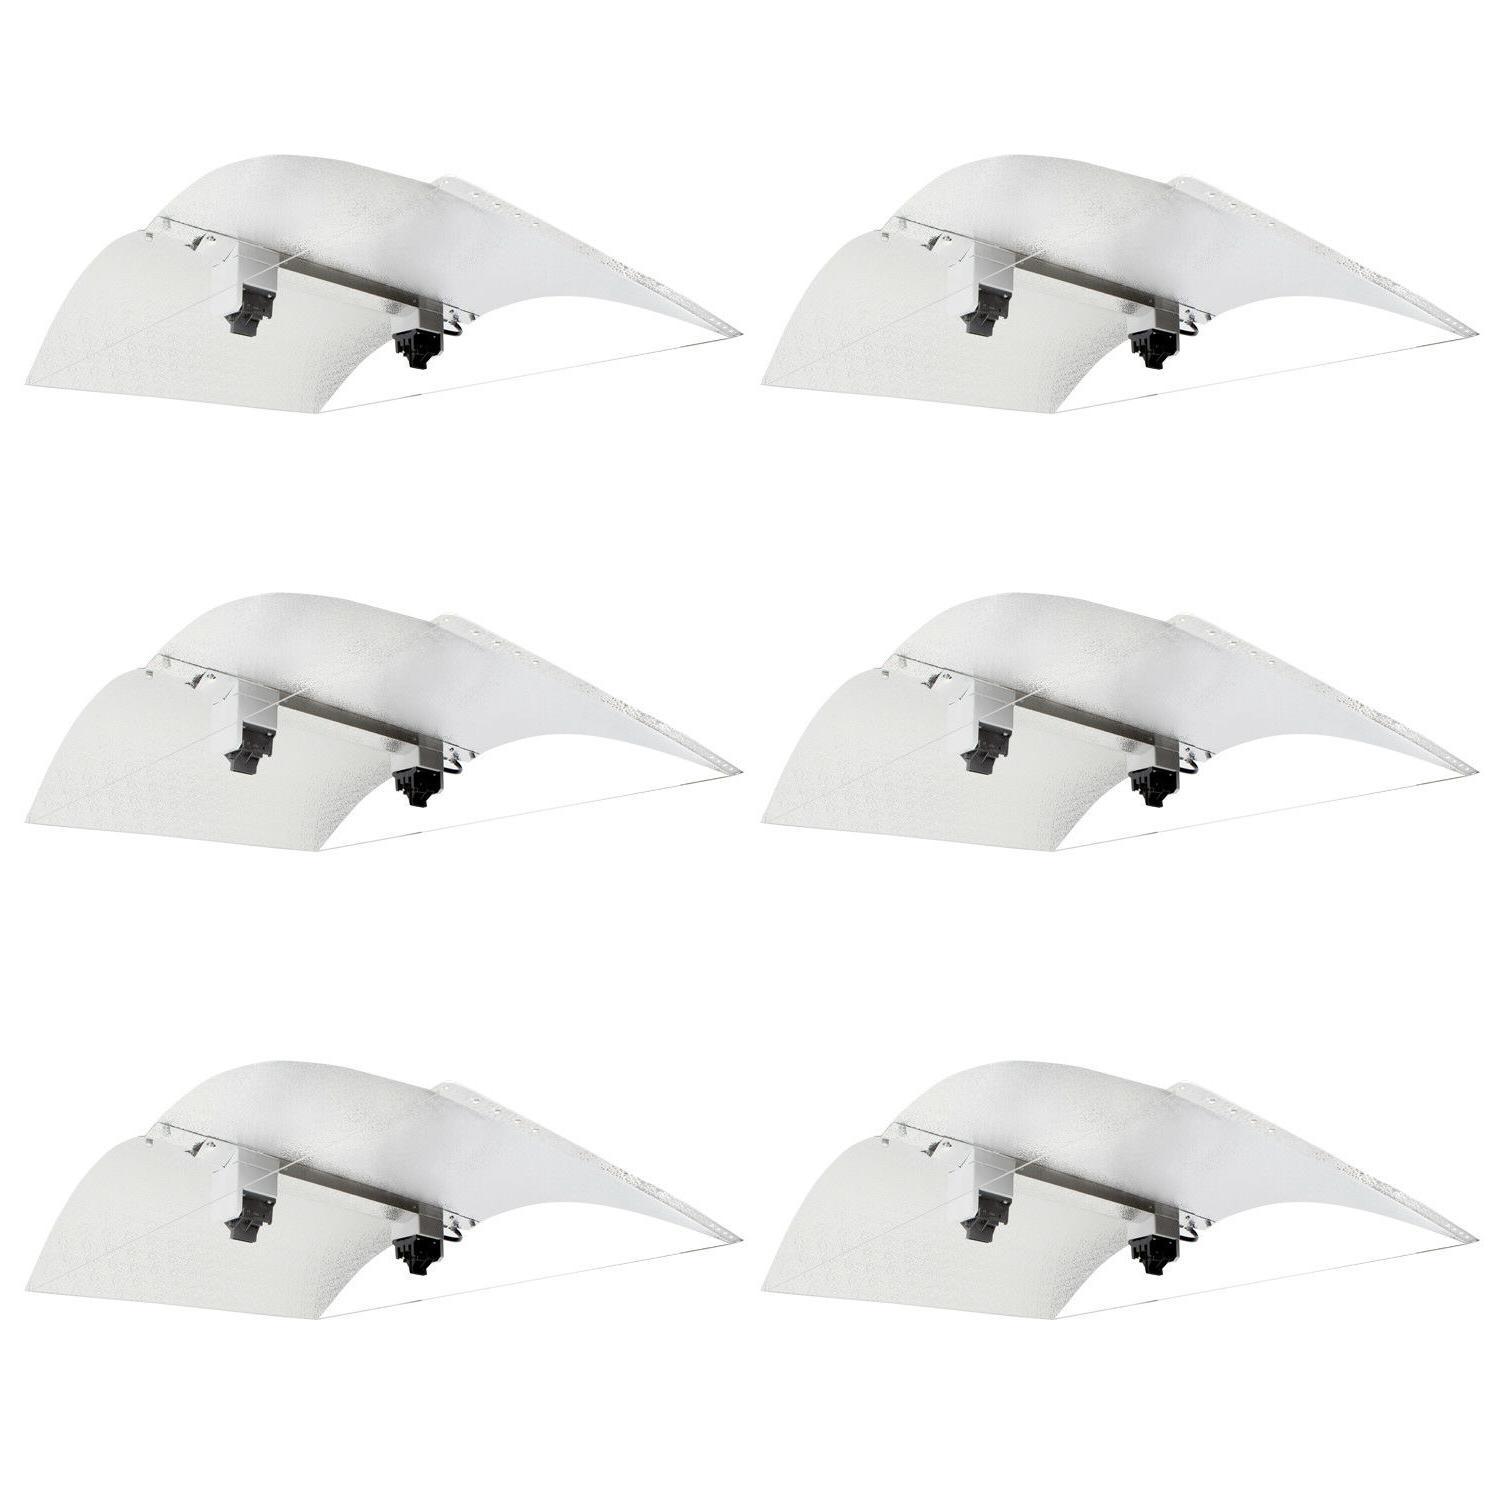 6 packs double ended adjust reflector